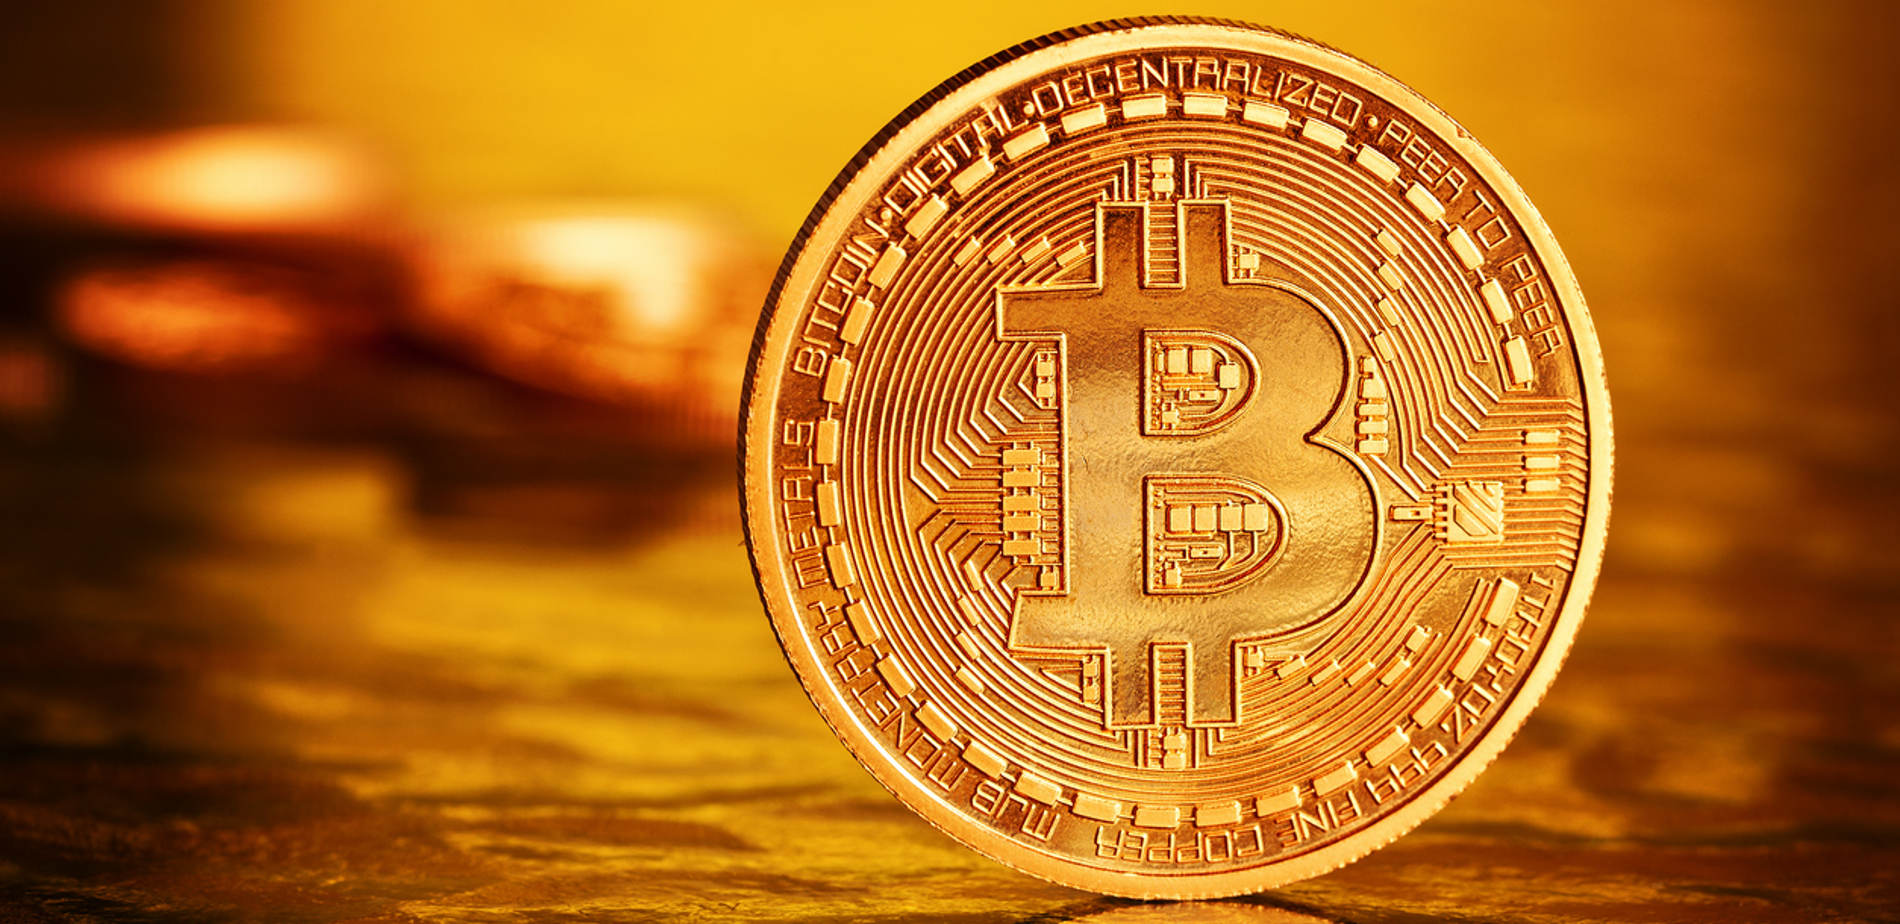 What Bitcoin Is and Why It's a Trending Topic